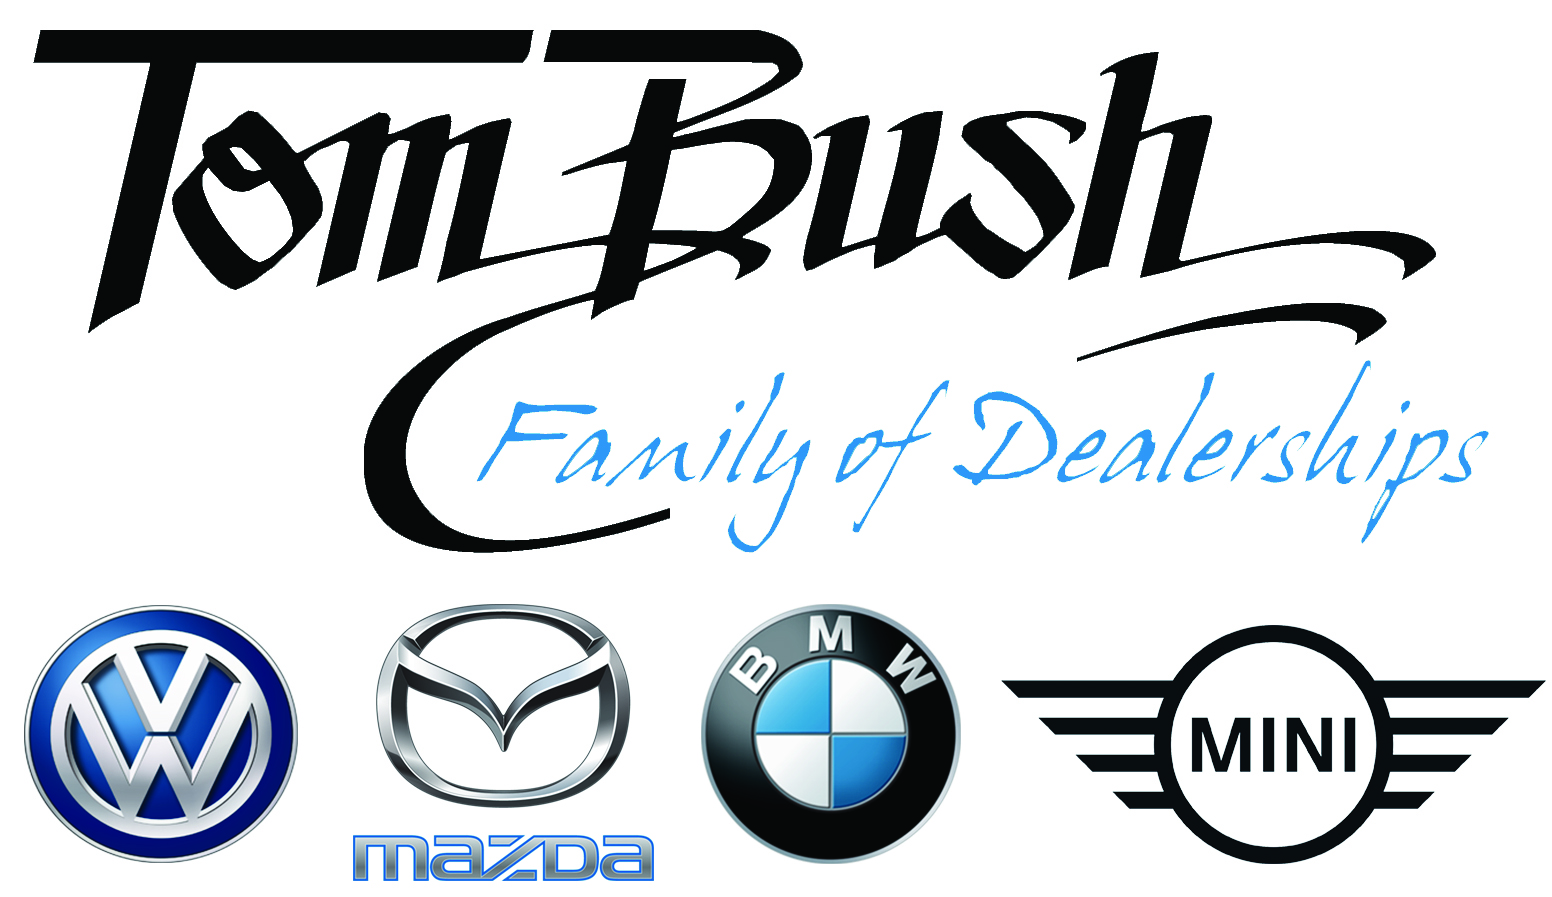 Tom Bush Family of Dealerships